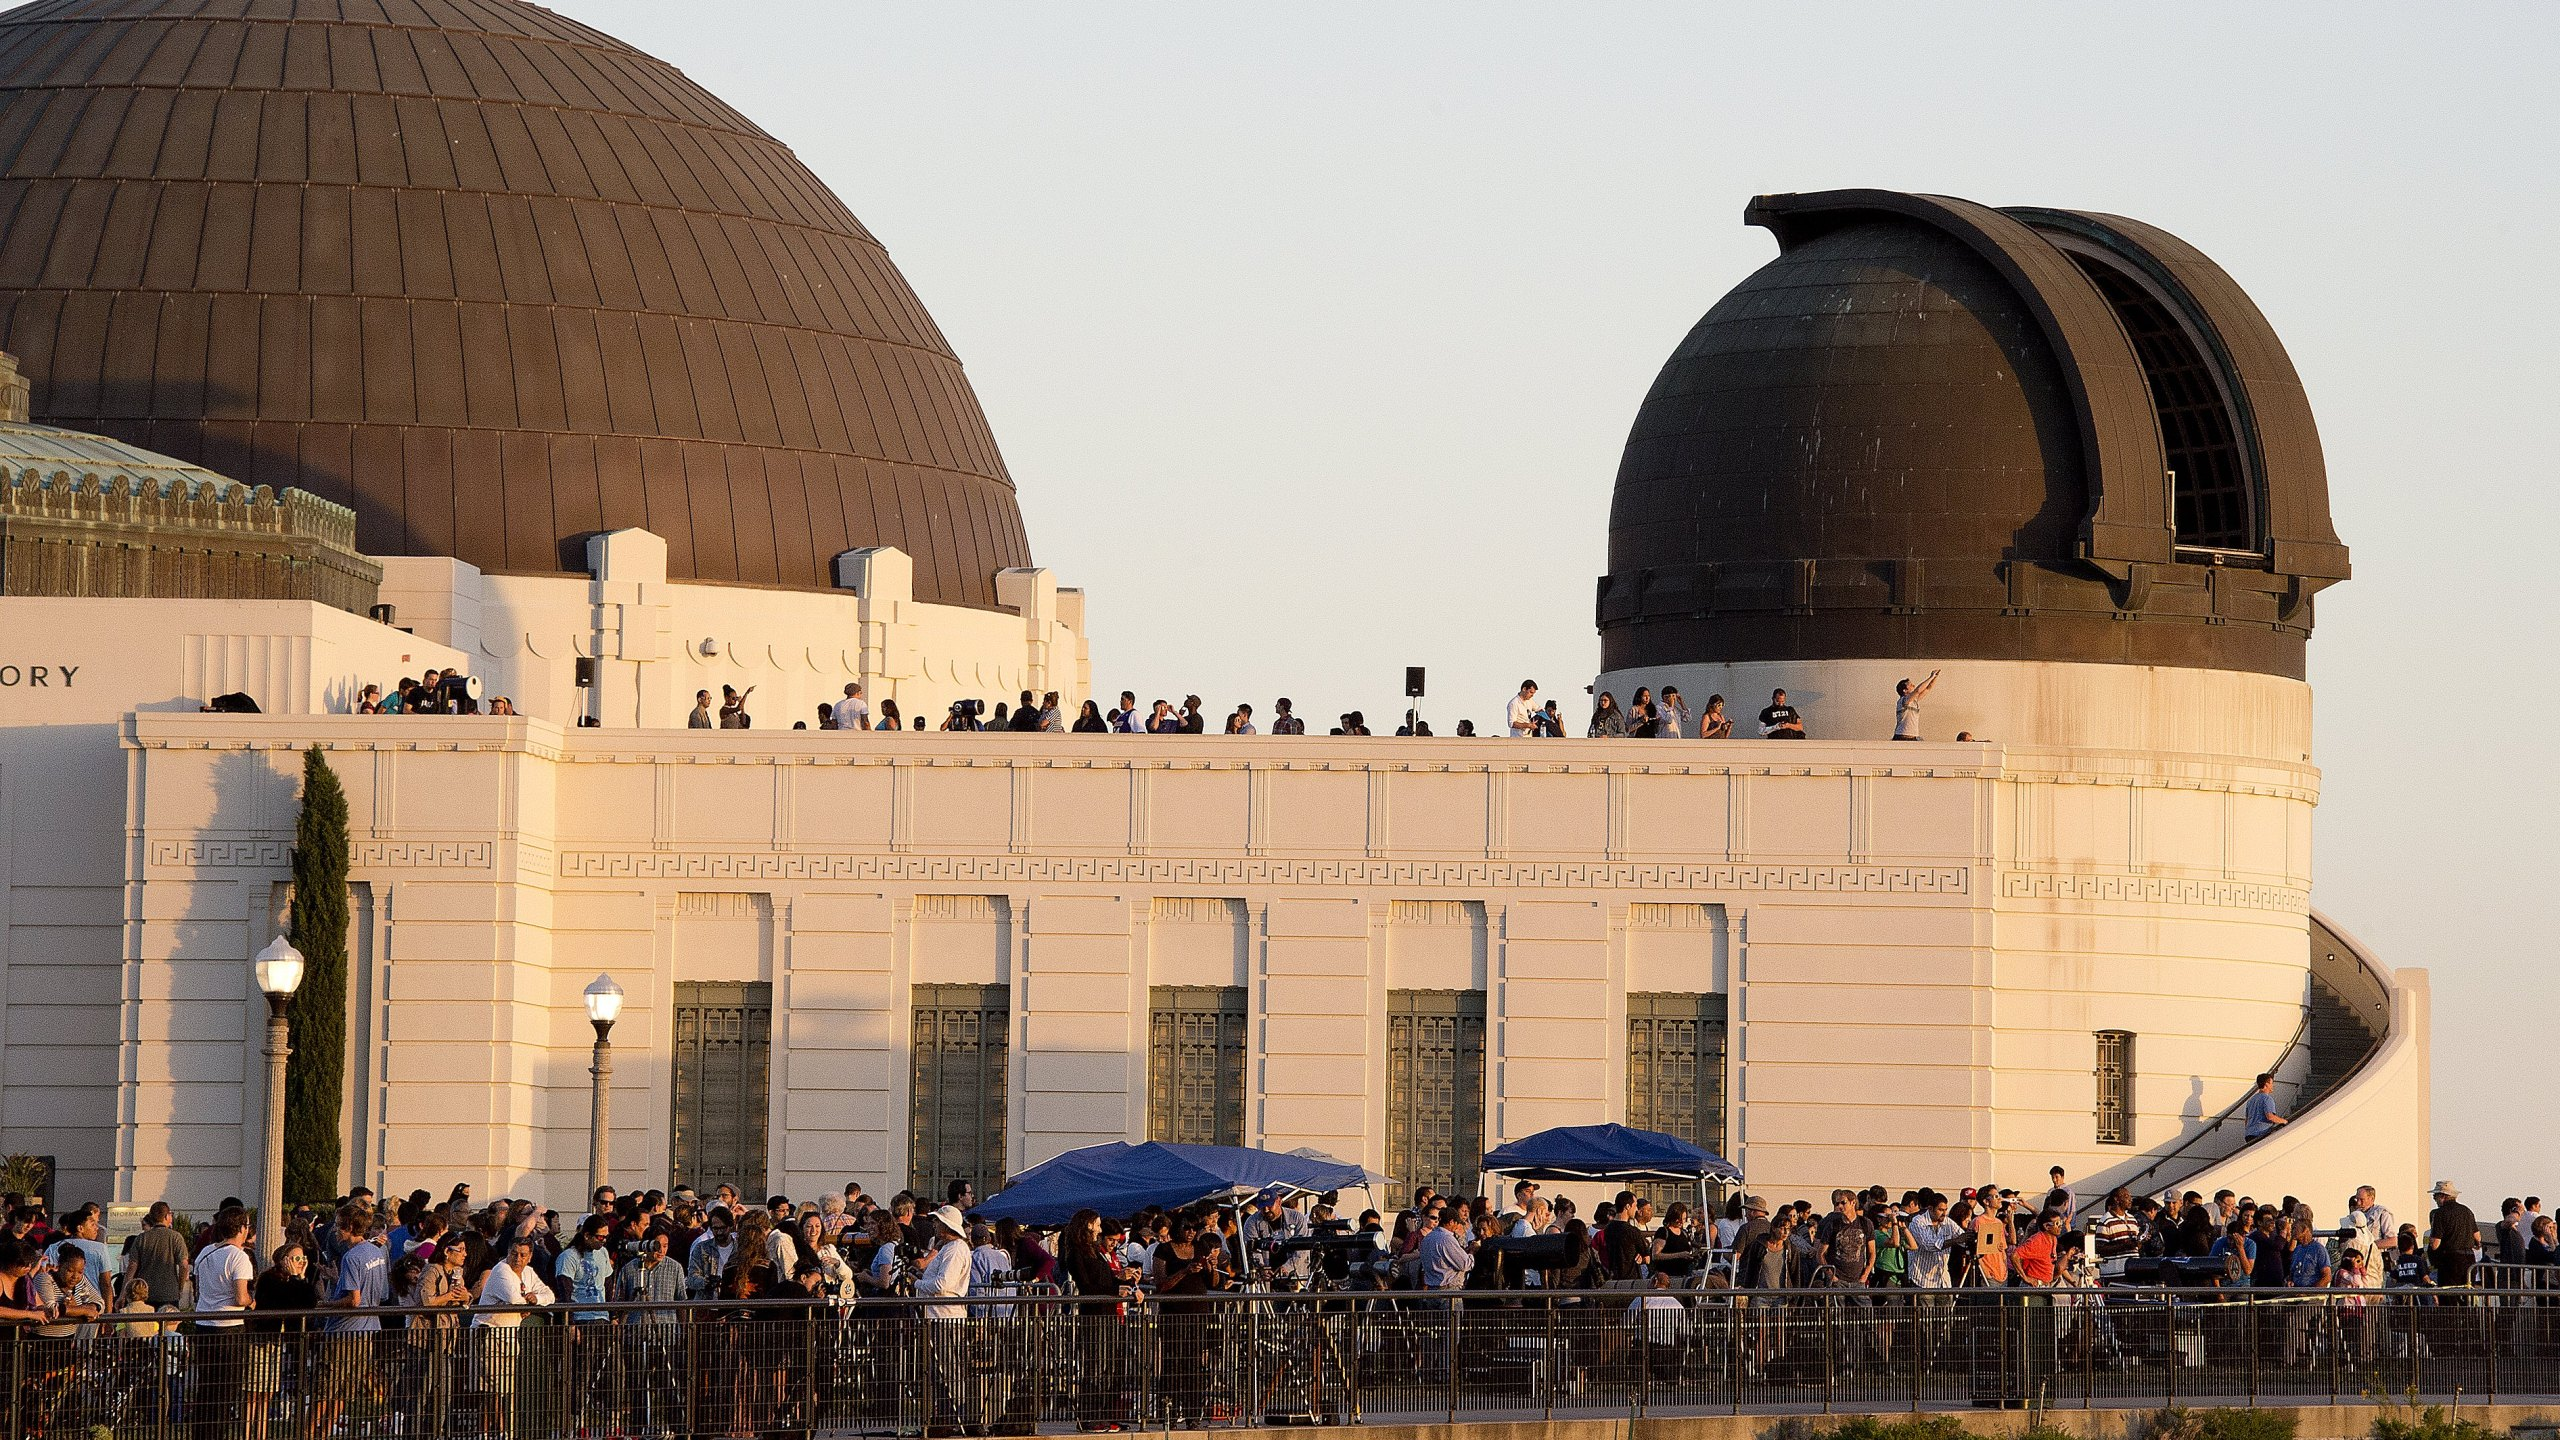 People watch the planet Venus transit across the face of the sun at Griffith Observatory in the Hollywood Hills area of Los Angeles, California June 5, 2012. (Credit: ROBYN BECK/AFP/GettyImages)